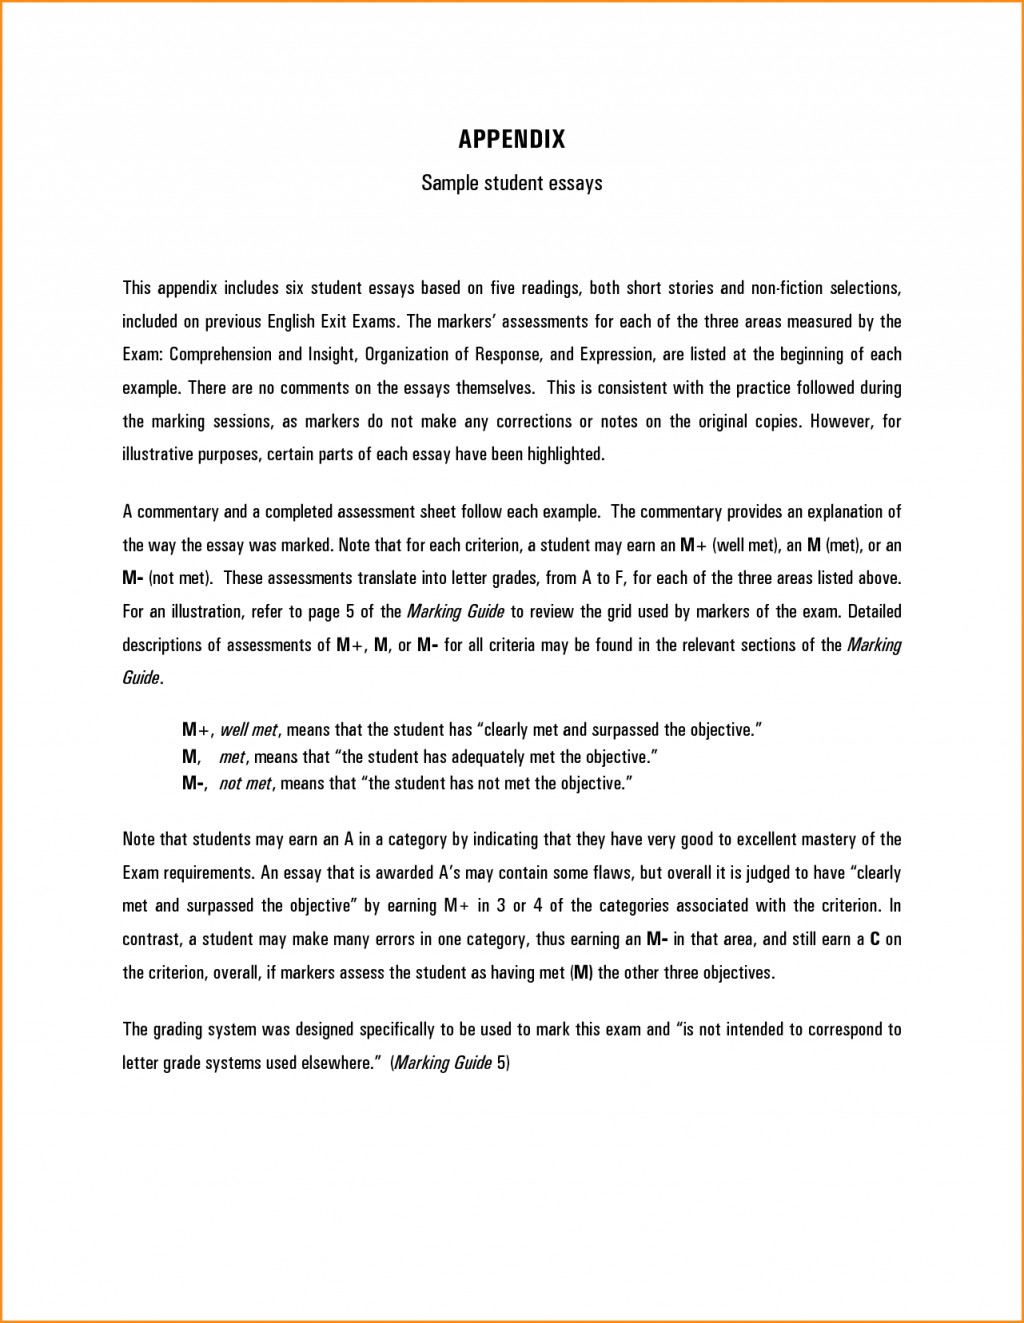 003 Essay Example High School Essays Admission Samples Astounding On Bullying Paper Pdf 2017 Biology Large